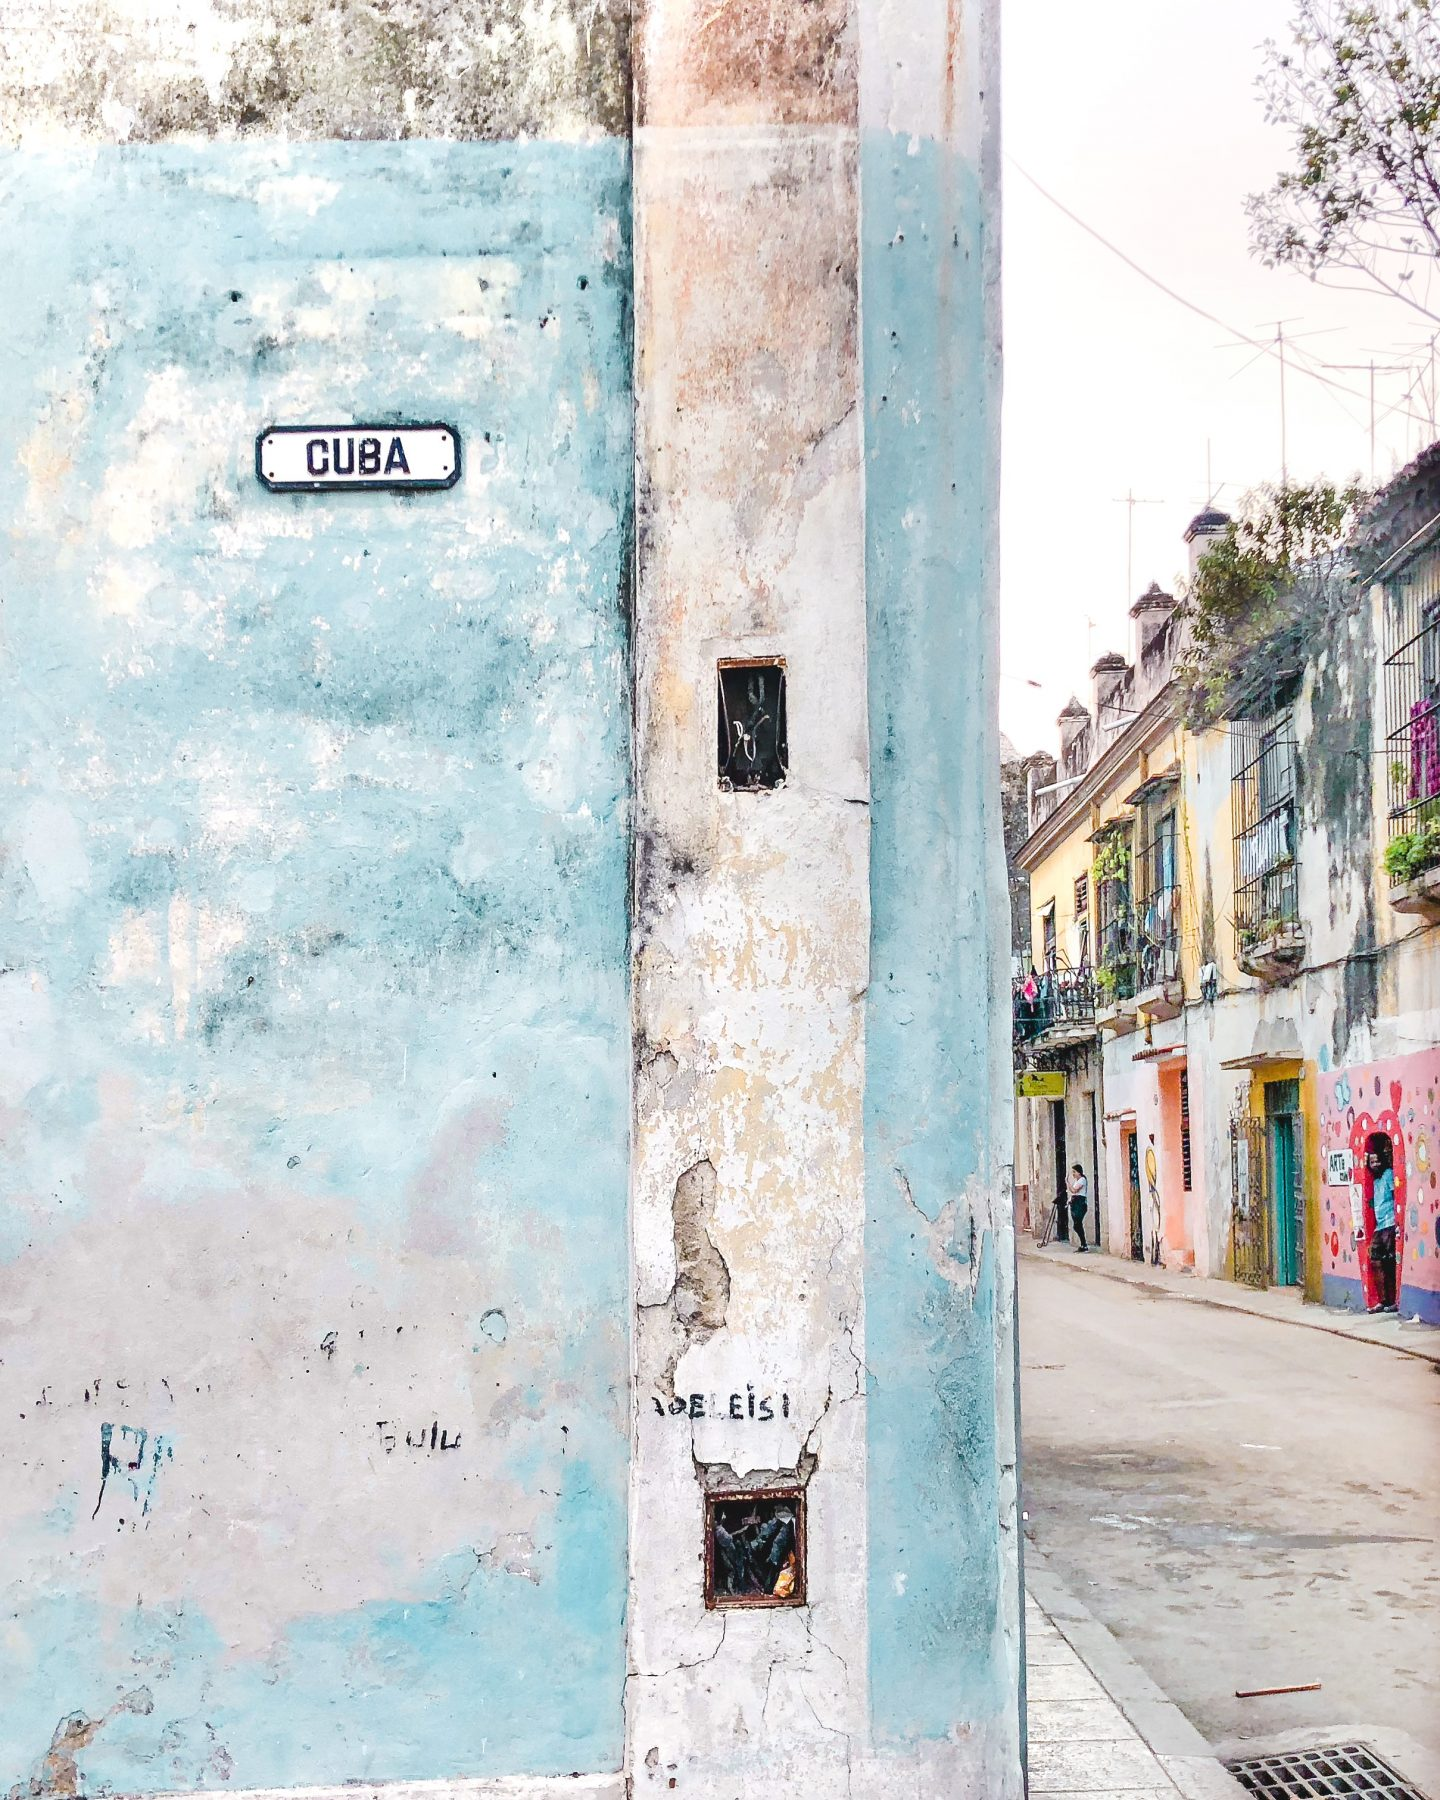 Explore Old Havana on foot